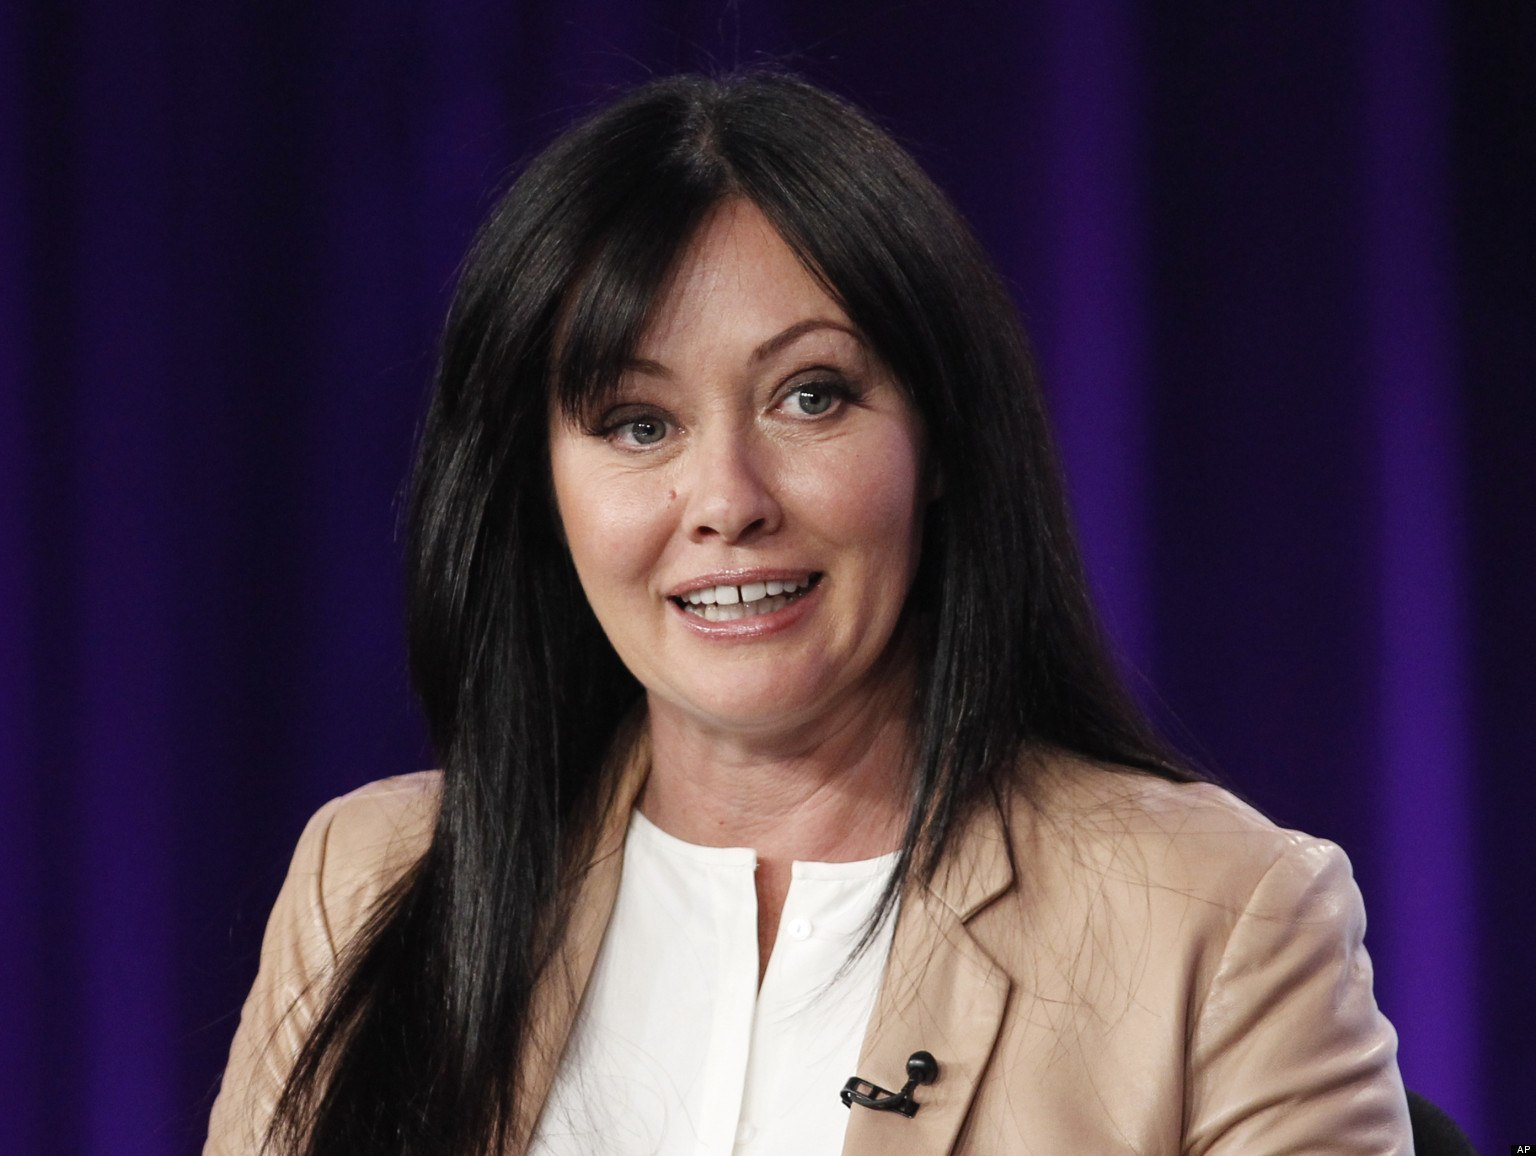 shannon doherty celebrities who lost their looks images 2015